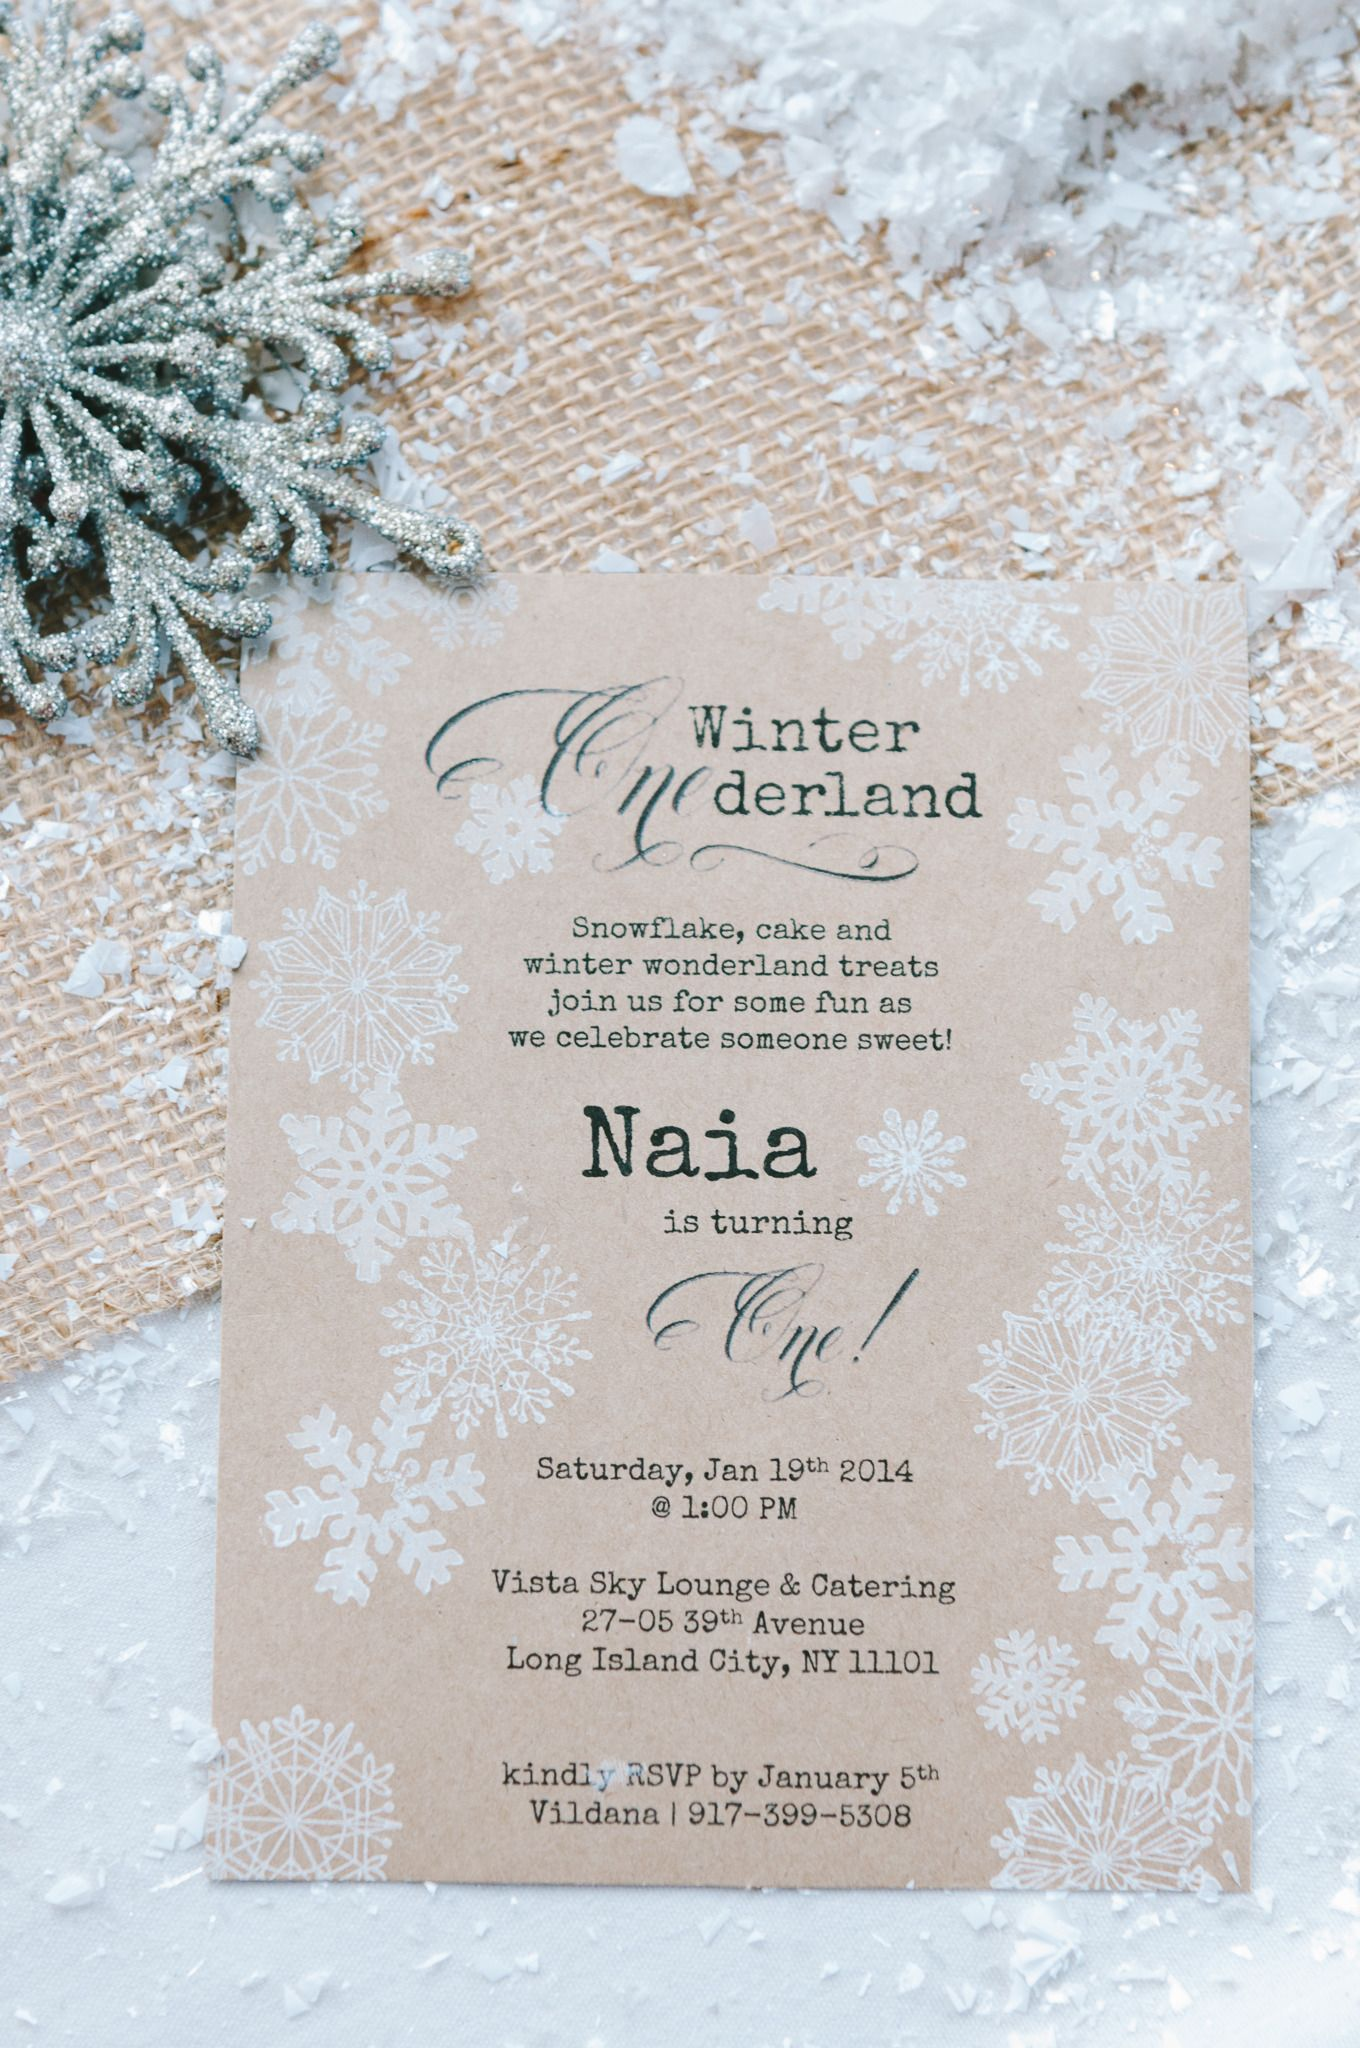 Winter Wonderland 1st Birthday Party | Party invitations ...